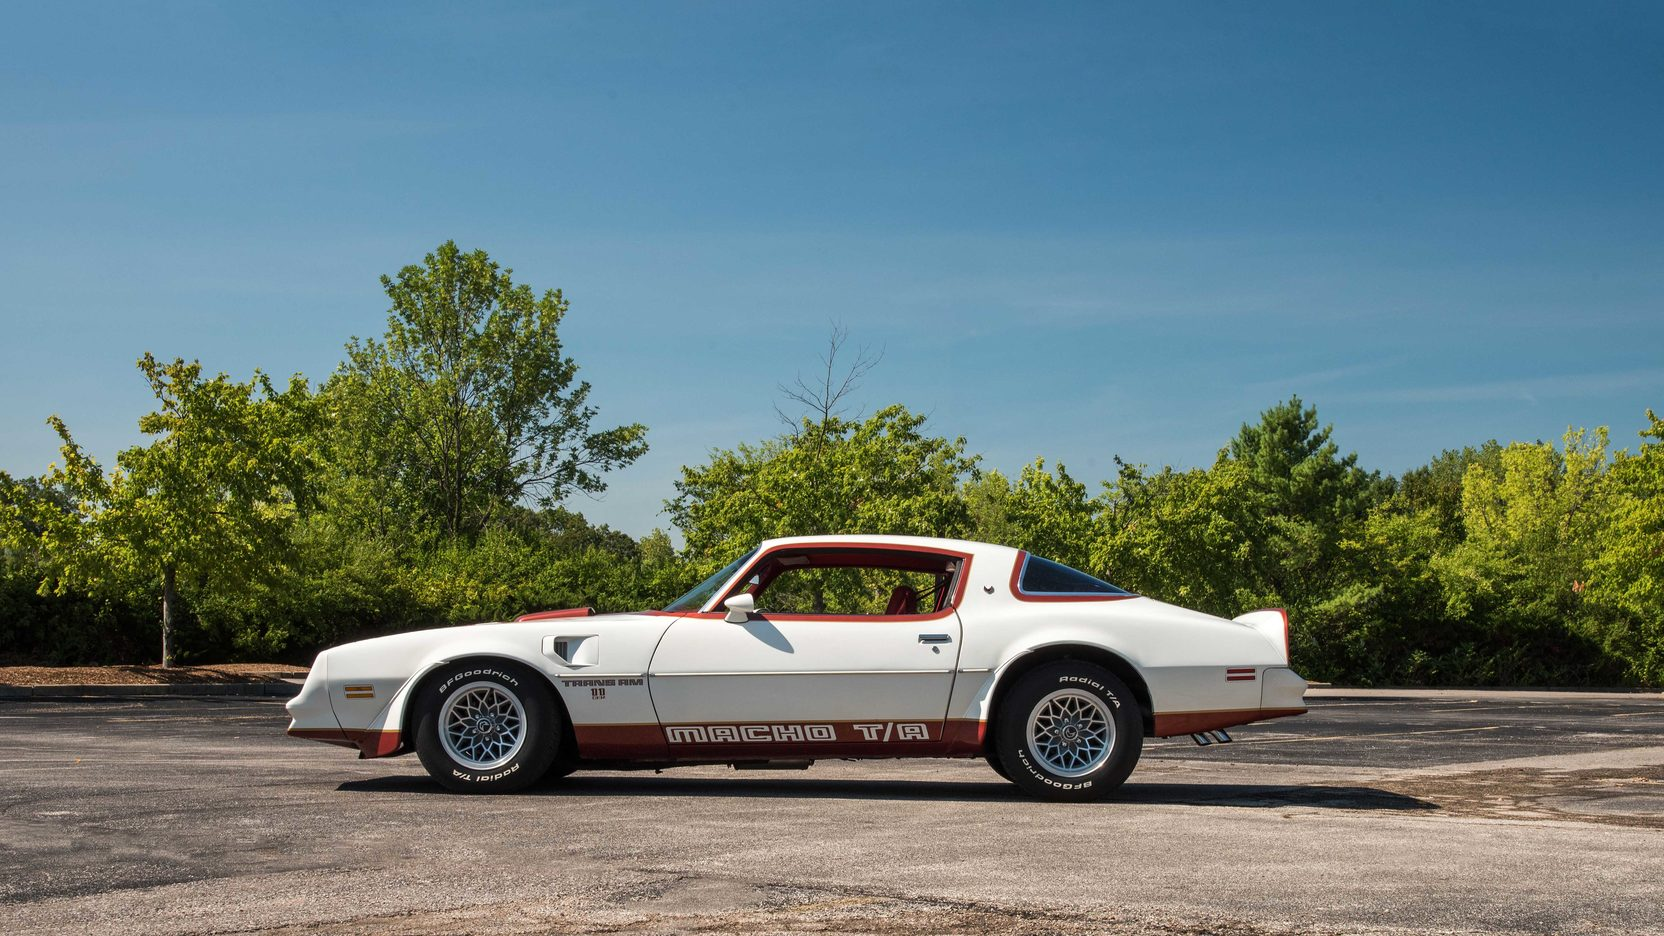 1978 Pontiac Macho Trans Am profile